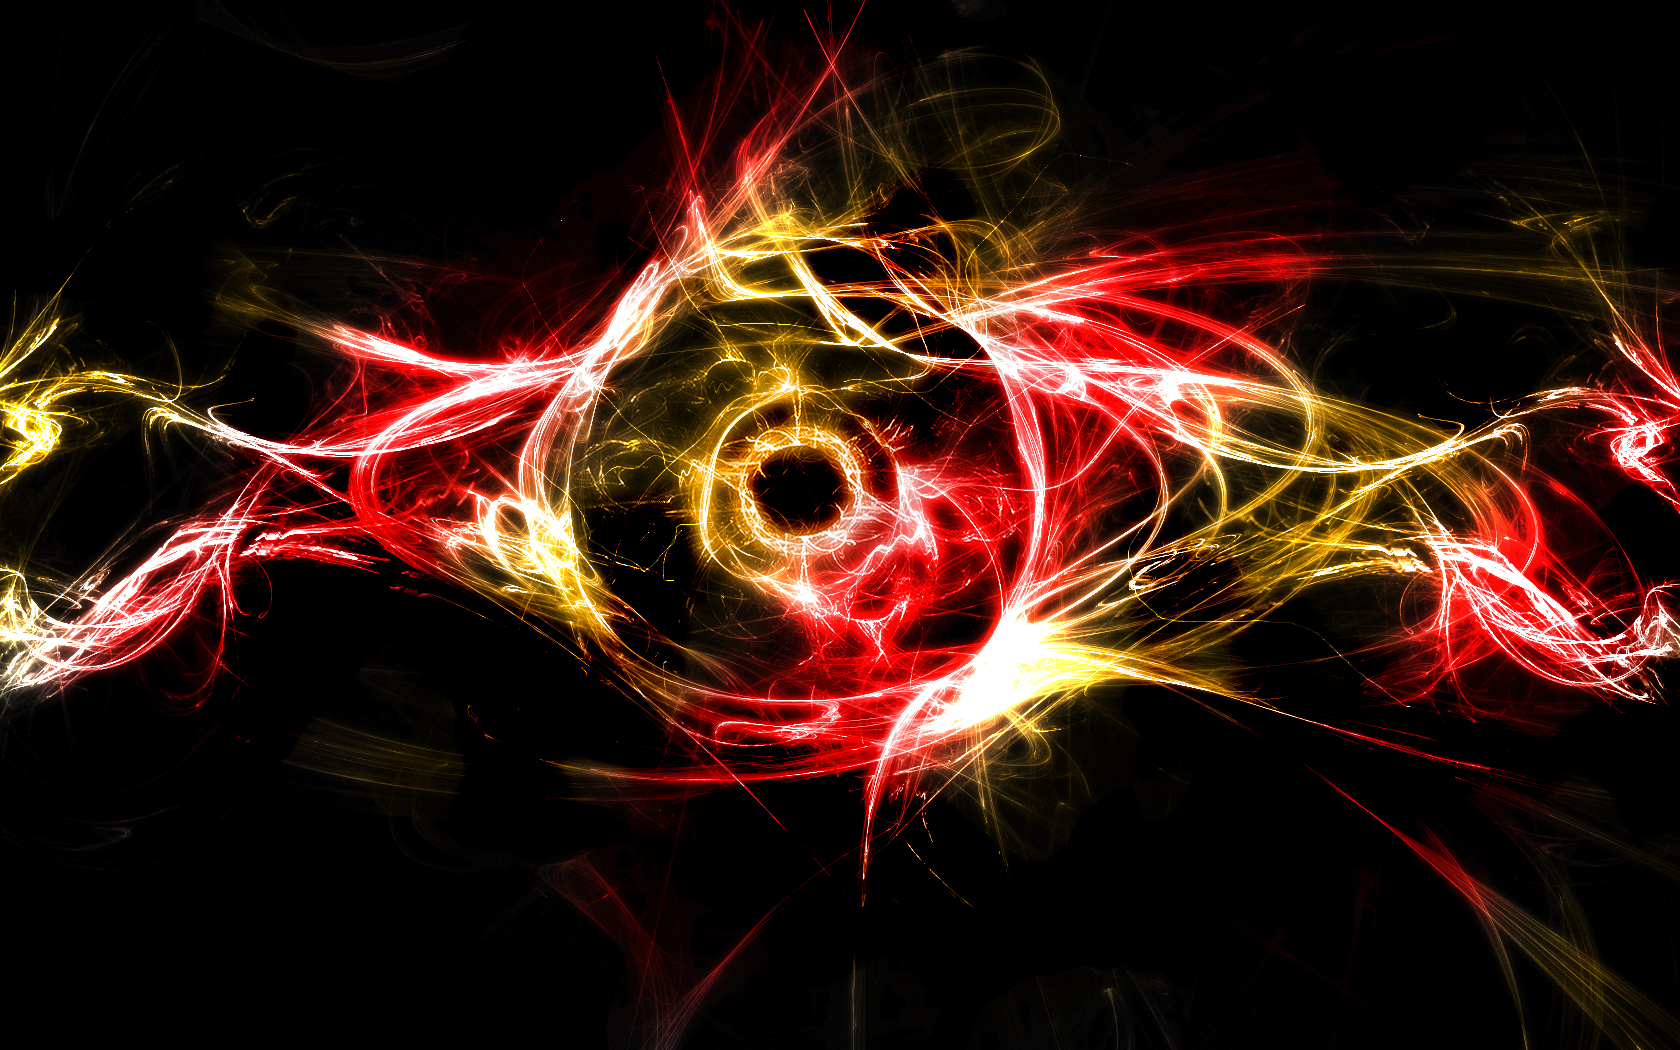 abstract desktop backgrounds 2 HD Wallpaper 3D Abstract Wallpapers 1680x1050